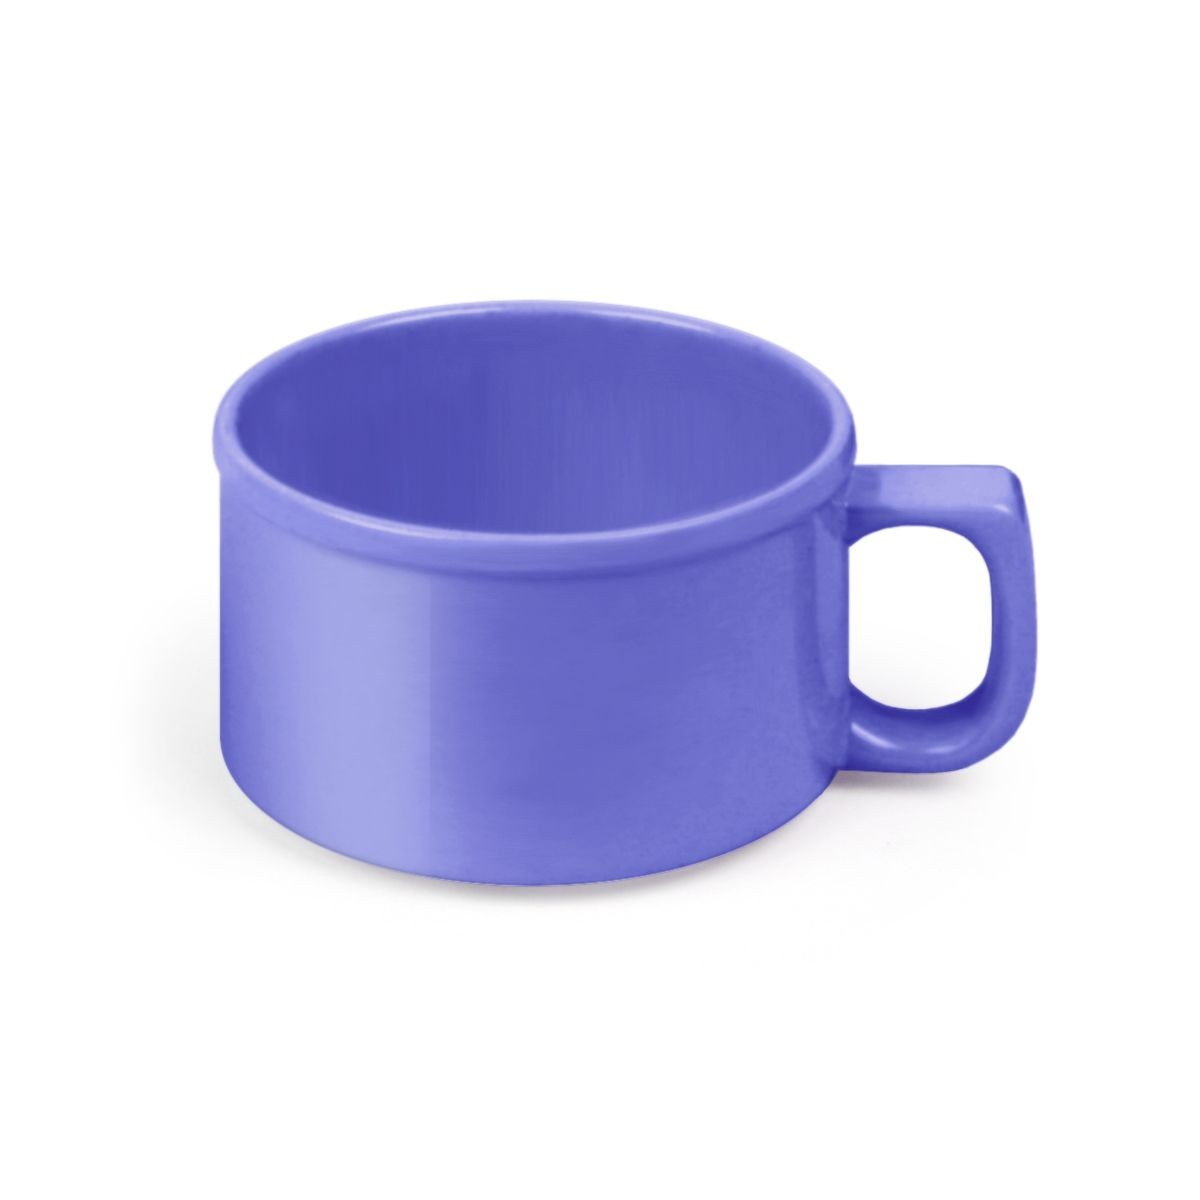 Thunder Group CR9016BU 8 oz Soup Mug, Melamine Blue - 1 doz